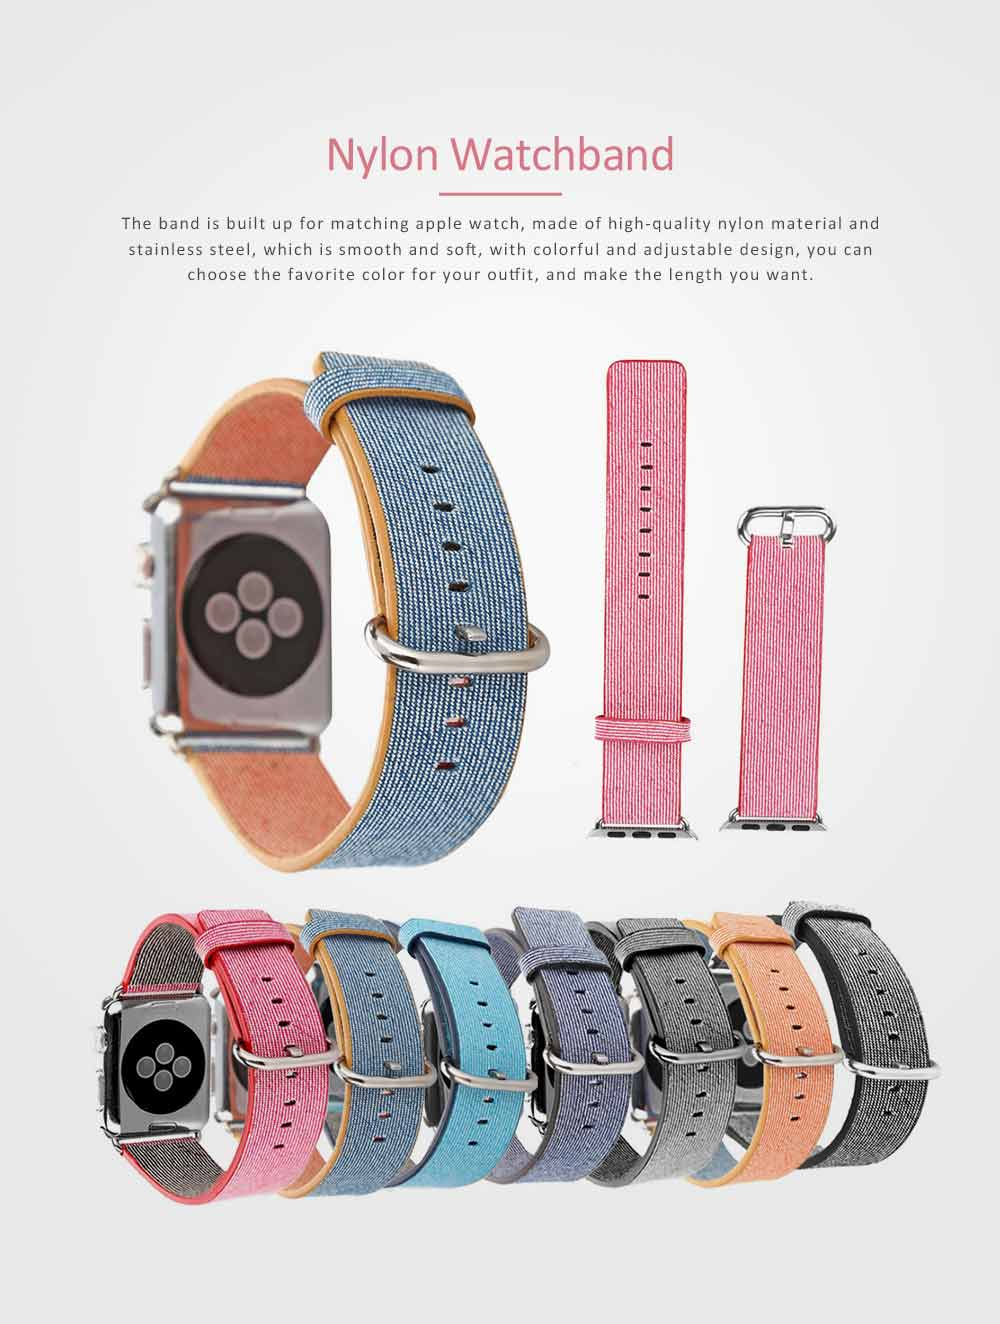 New Nylon Watchband for Apple Watch, Colorful Watch Strap, 38 & 42mm 0